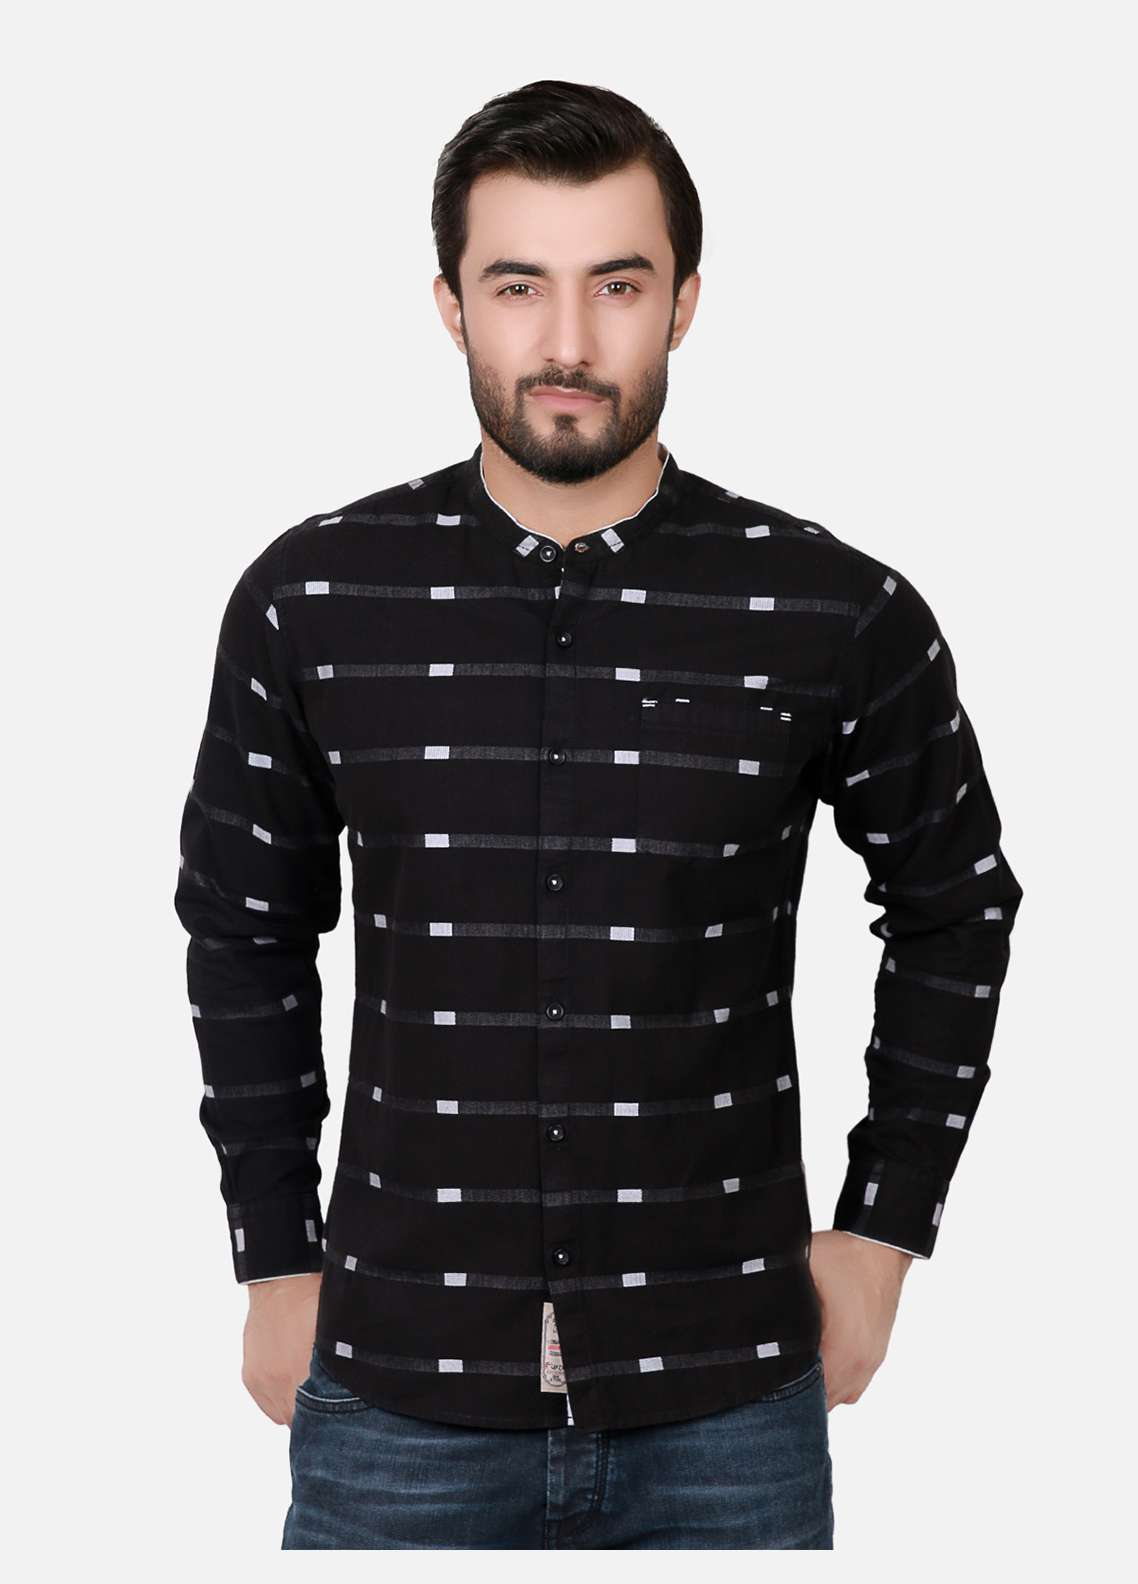 Furor  Casual Shirts for Men - Black FRM18CS 31174